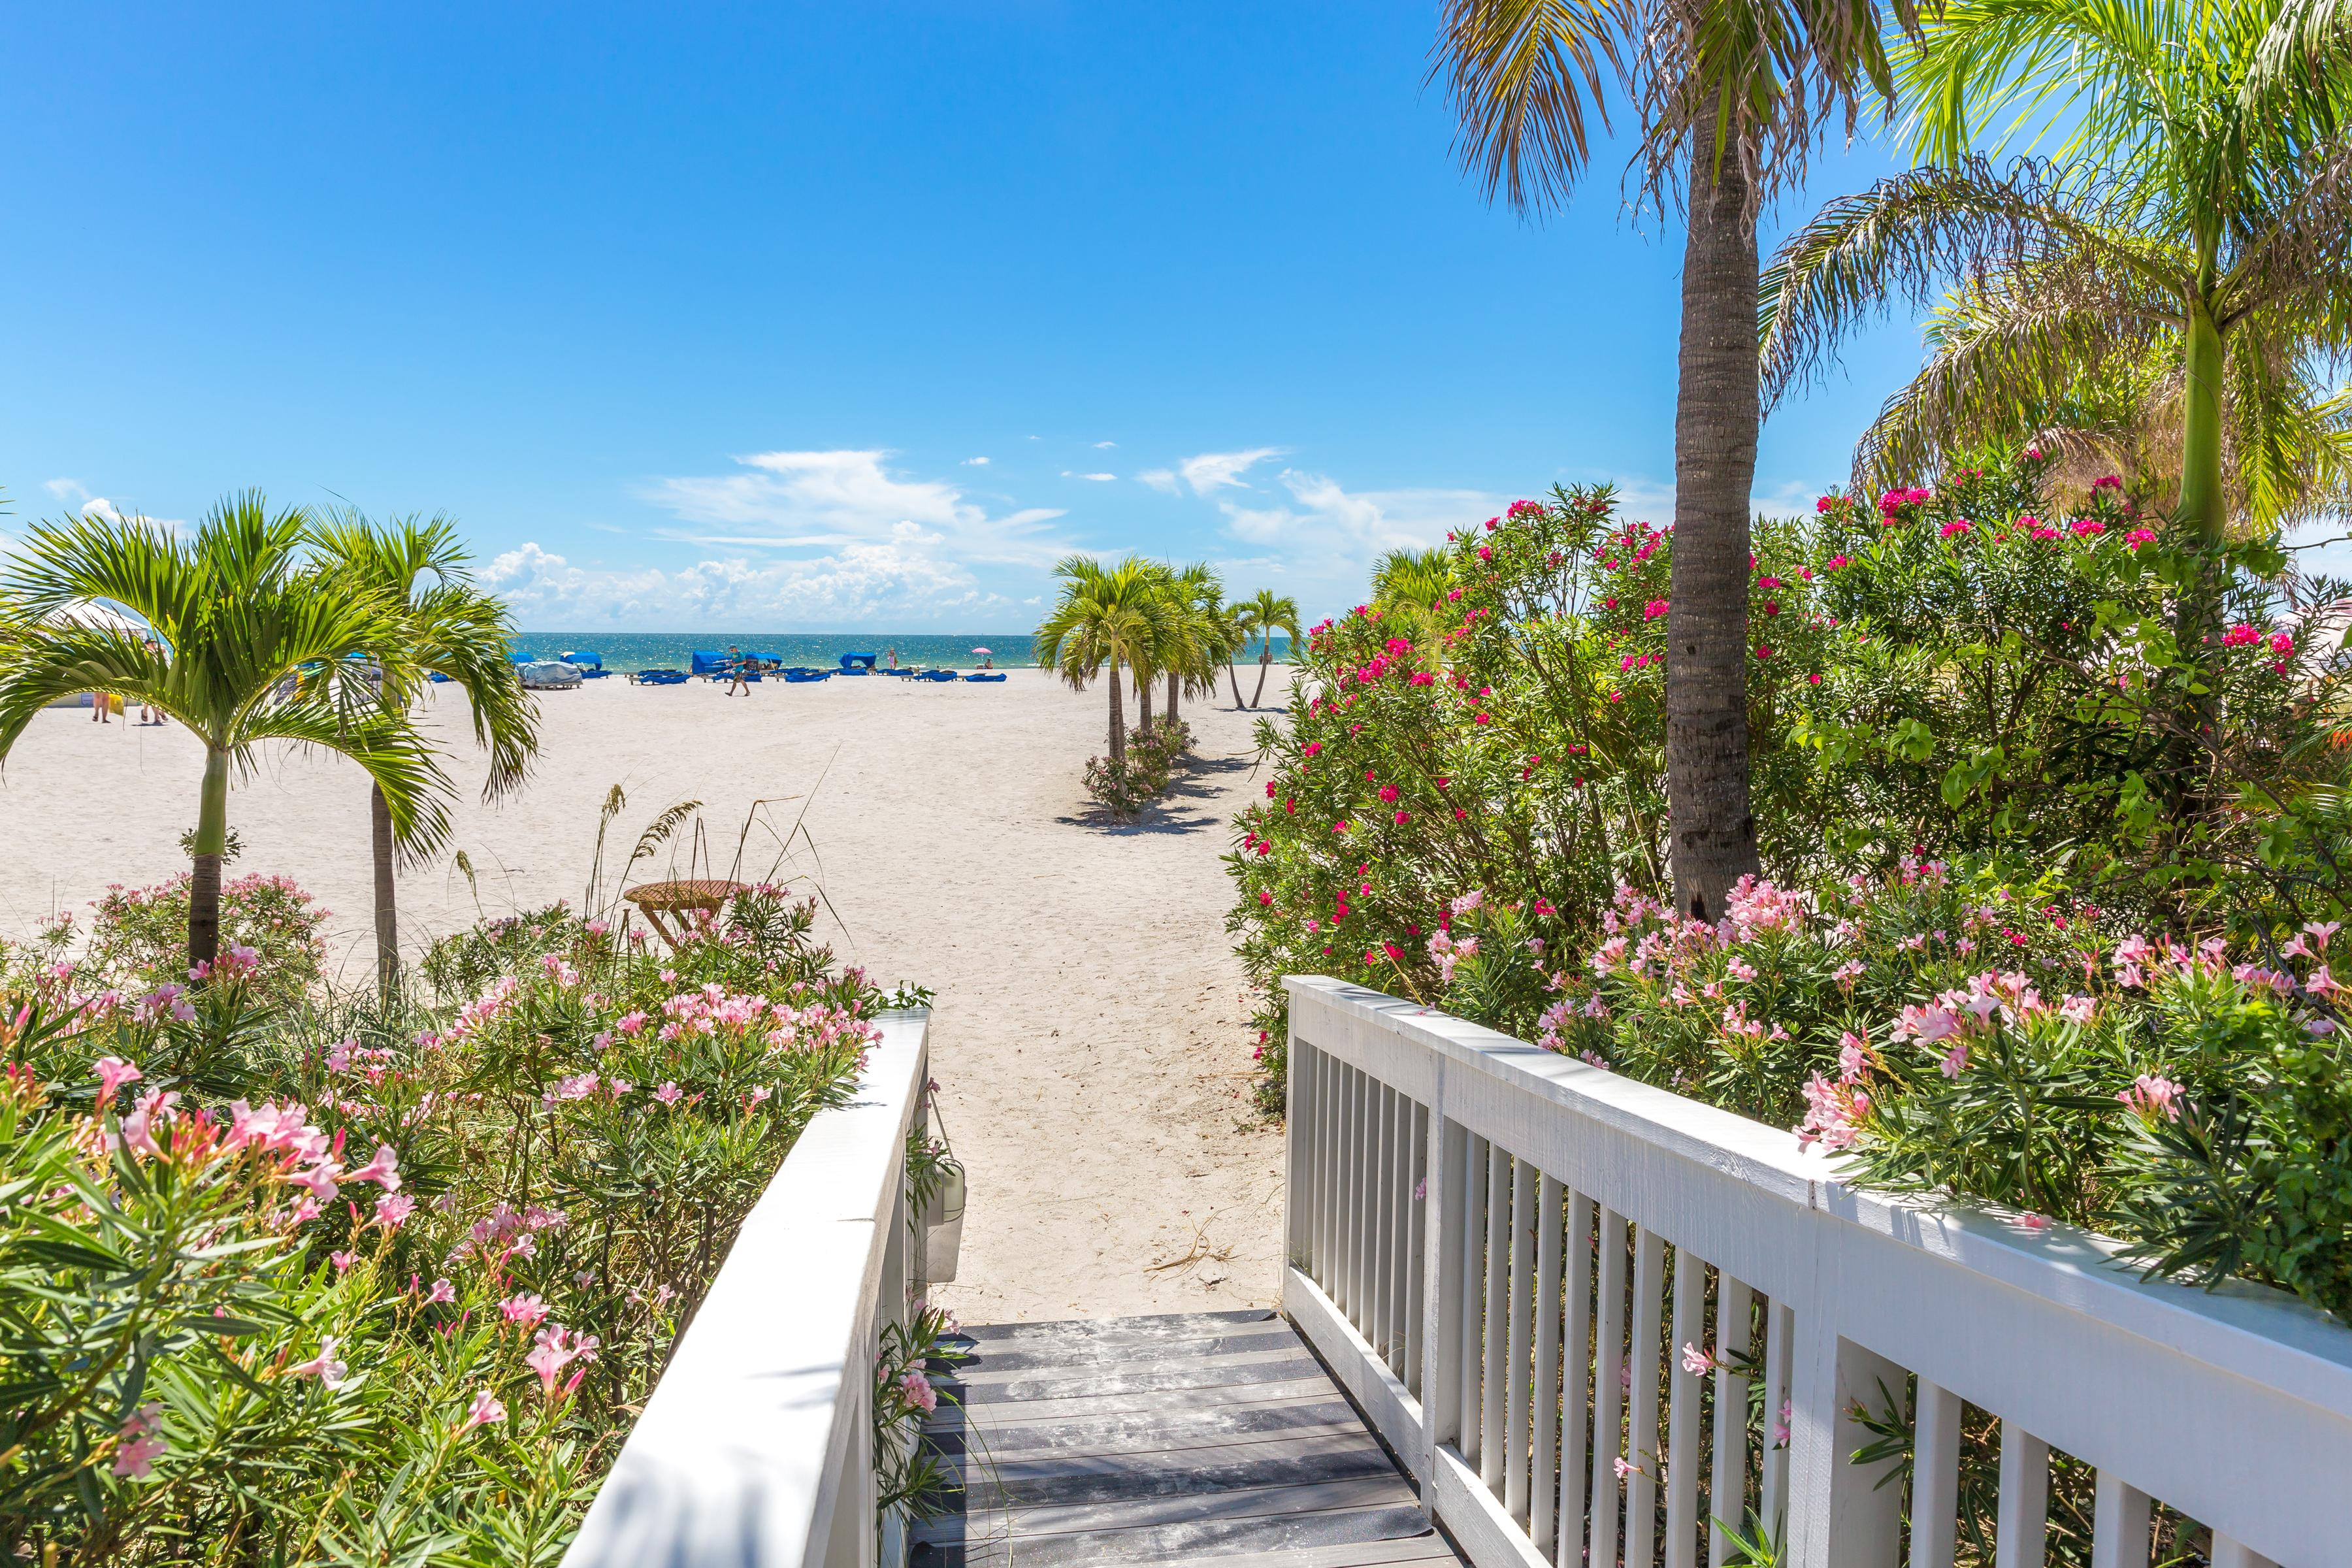 Follow the boardwalk directly to the sandy beach.